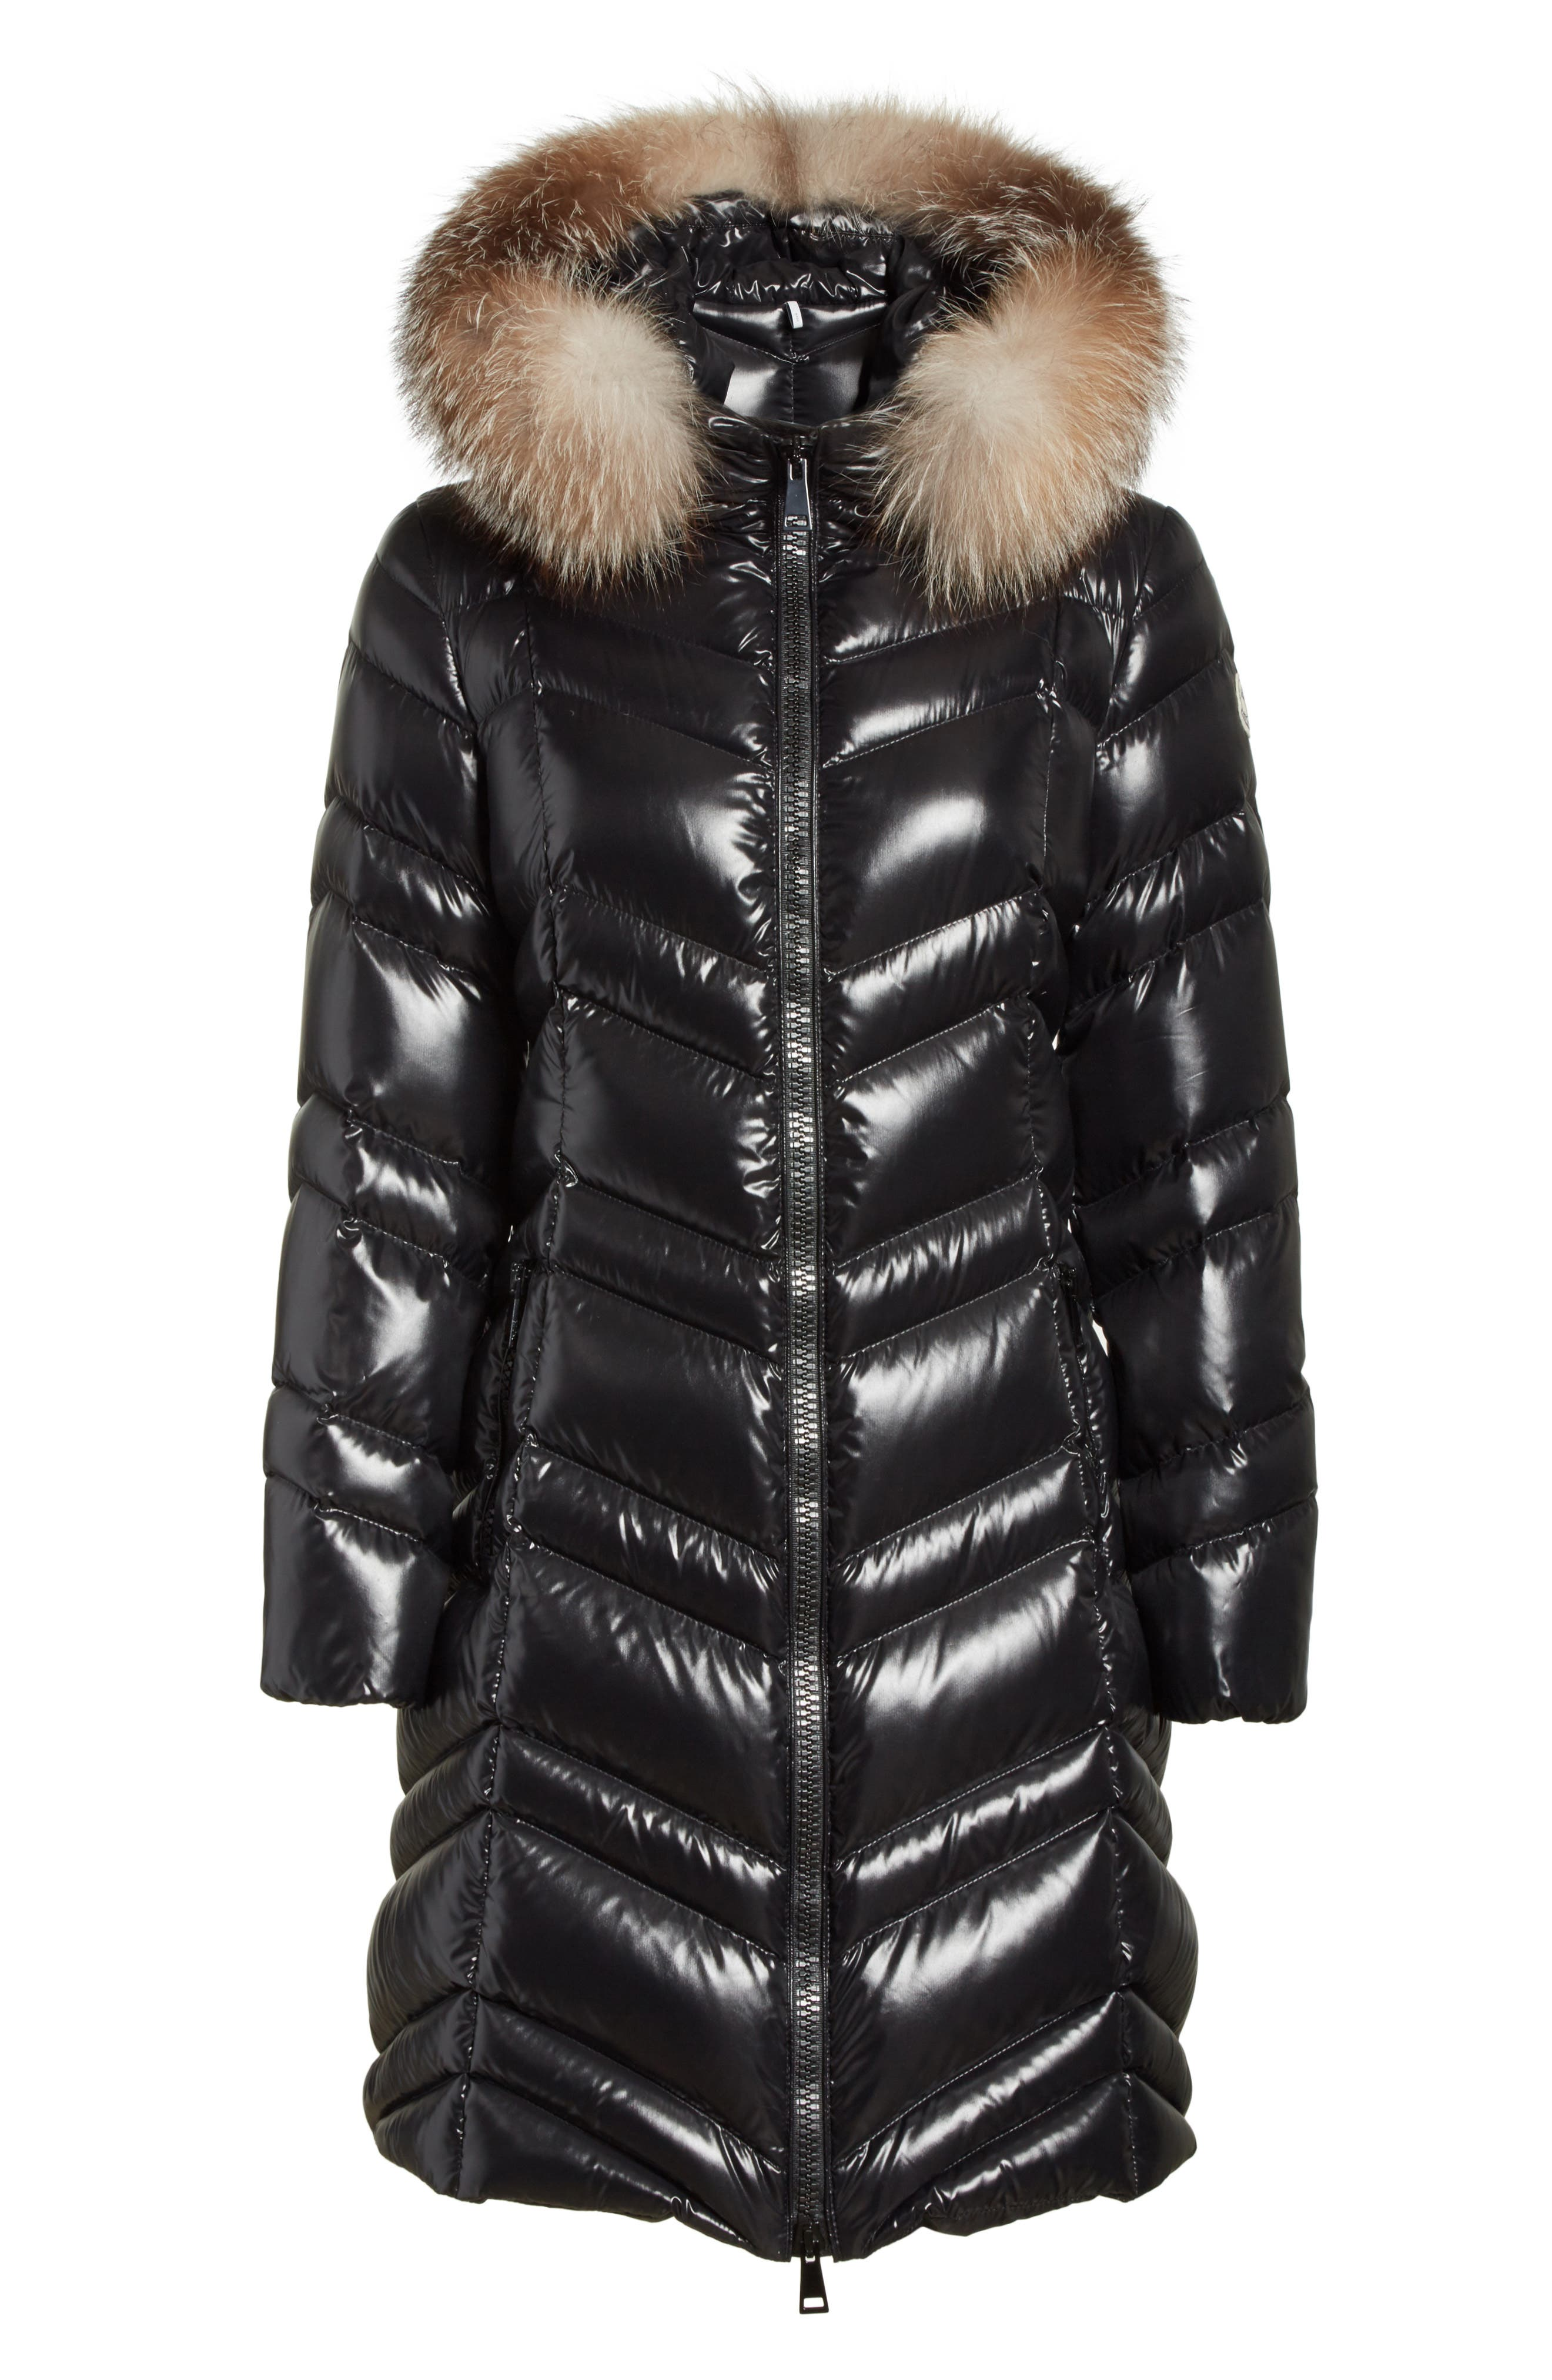 Fulmar Hooded Down Puffer Coat with Removable Genuine Fox Fur Trim,                             Alternate thumbnail 6, color,                             001